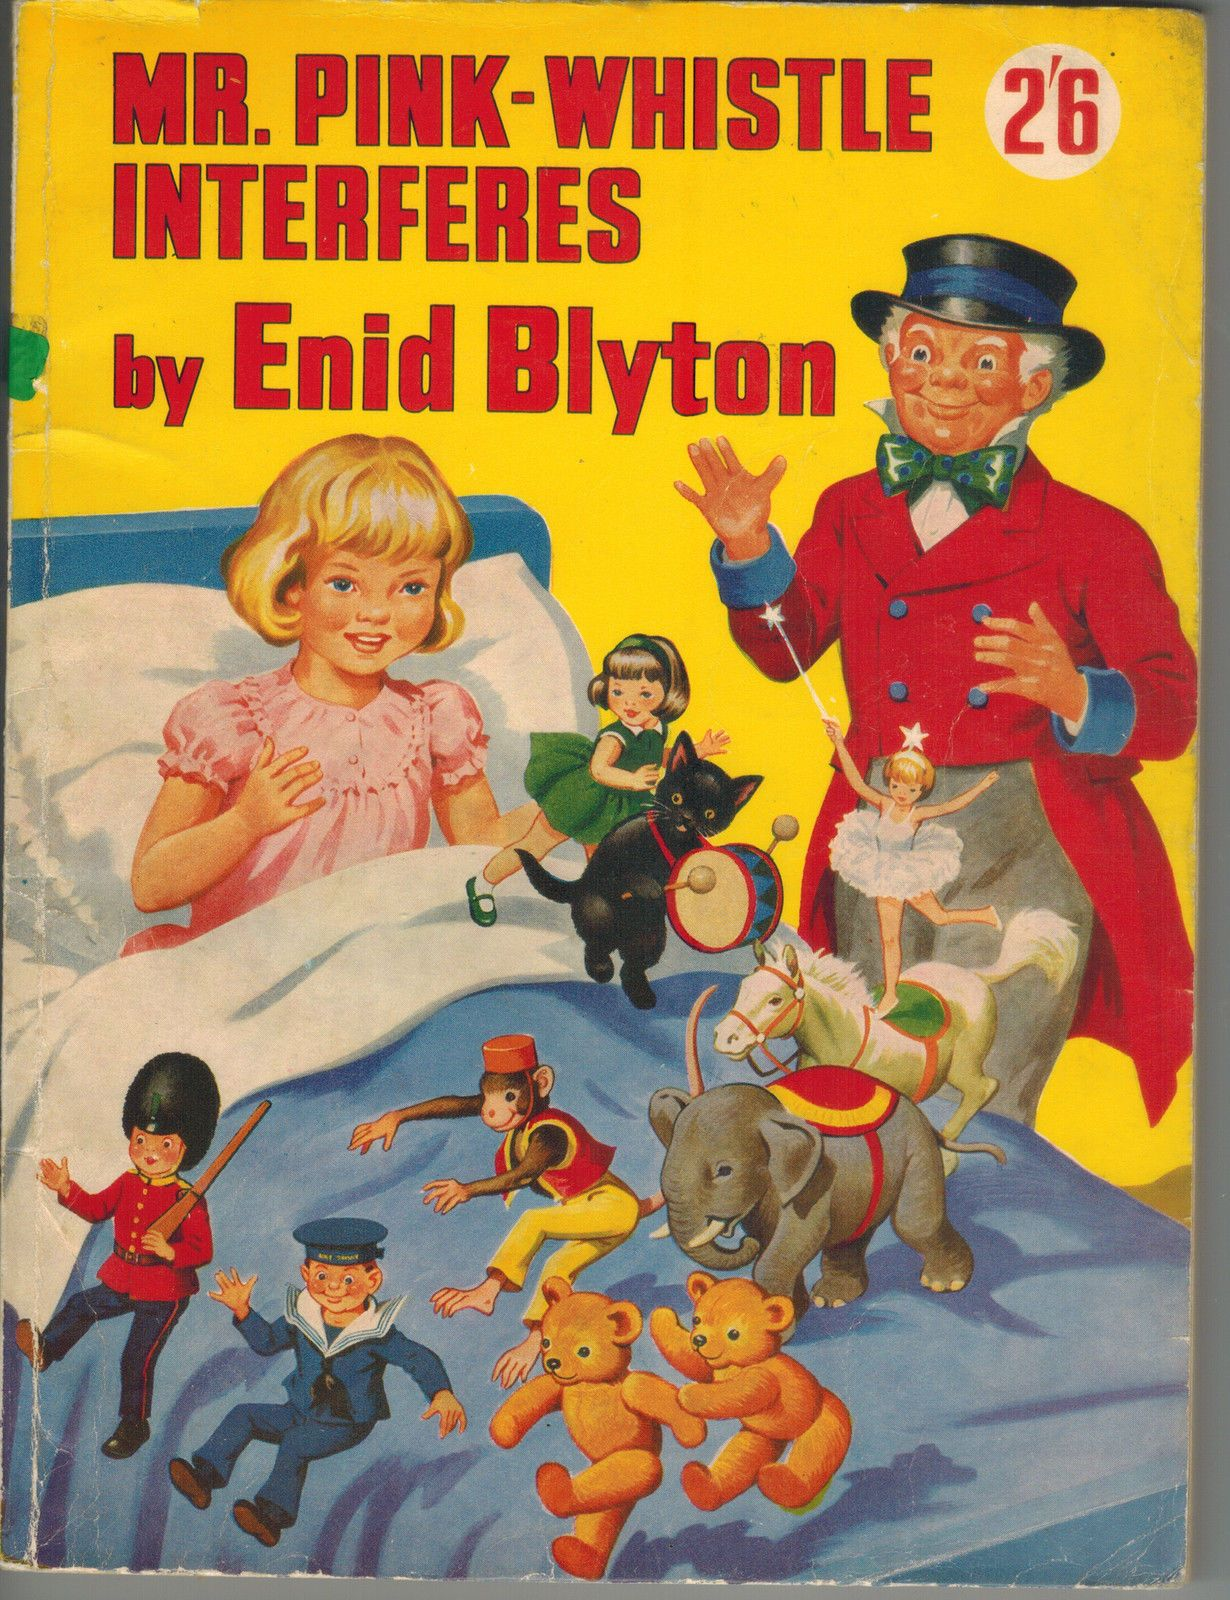 Mr Pink Whistle Interferes Illus By Dorothy Wheeler 1967 Ebay Enid Blyton Mystery Of The Vanished Prince I Remember Pinkwhistle Books Gosh This Does Bring Back Memories